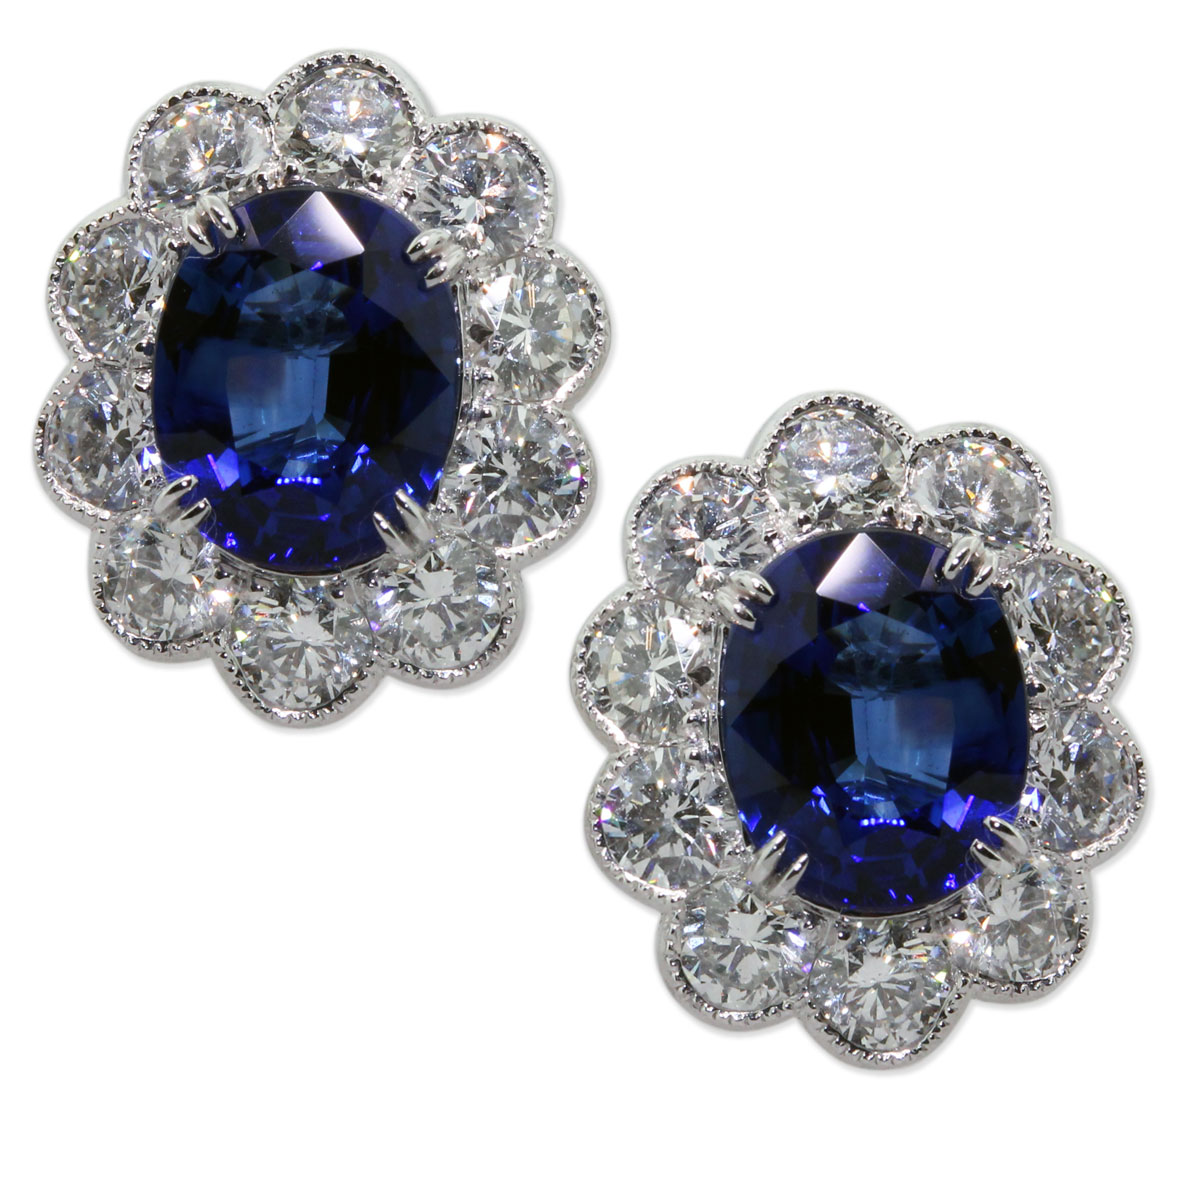 4.24 Carat Blue Sapphire and Diamond Floral Button Earrings